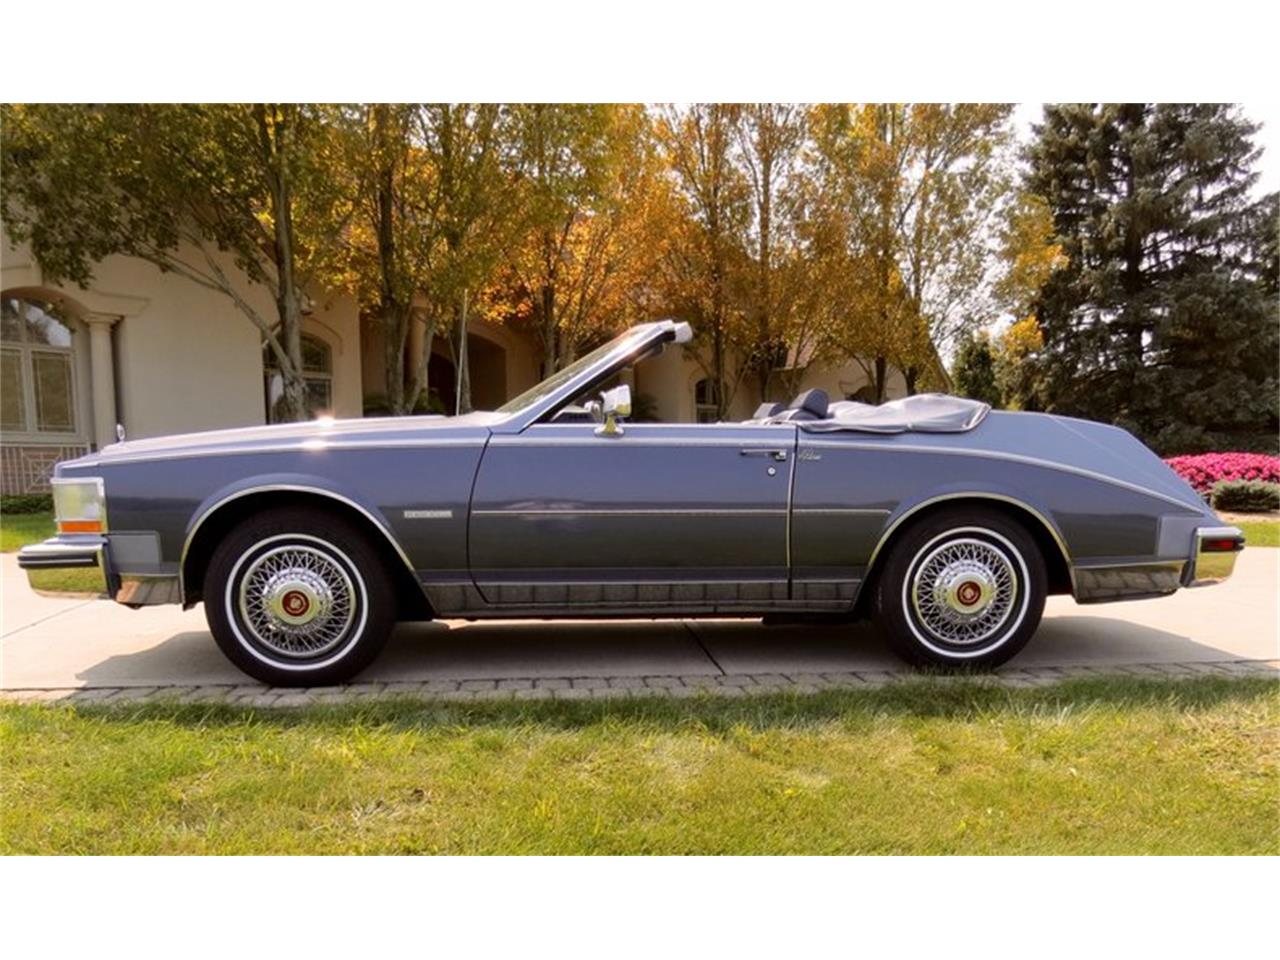 1983 Cadillac Seville for sale in Dayton, OH – photo 2